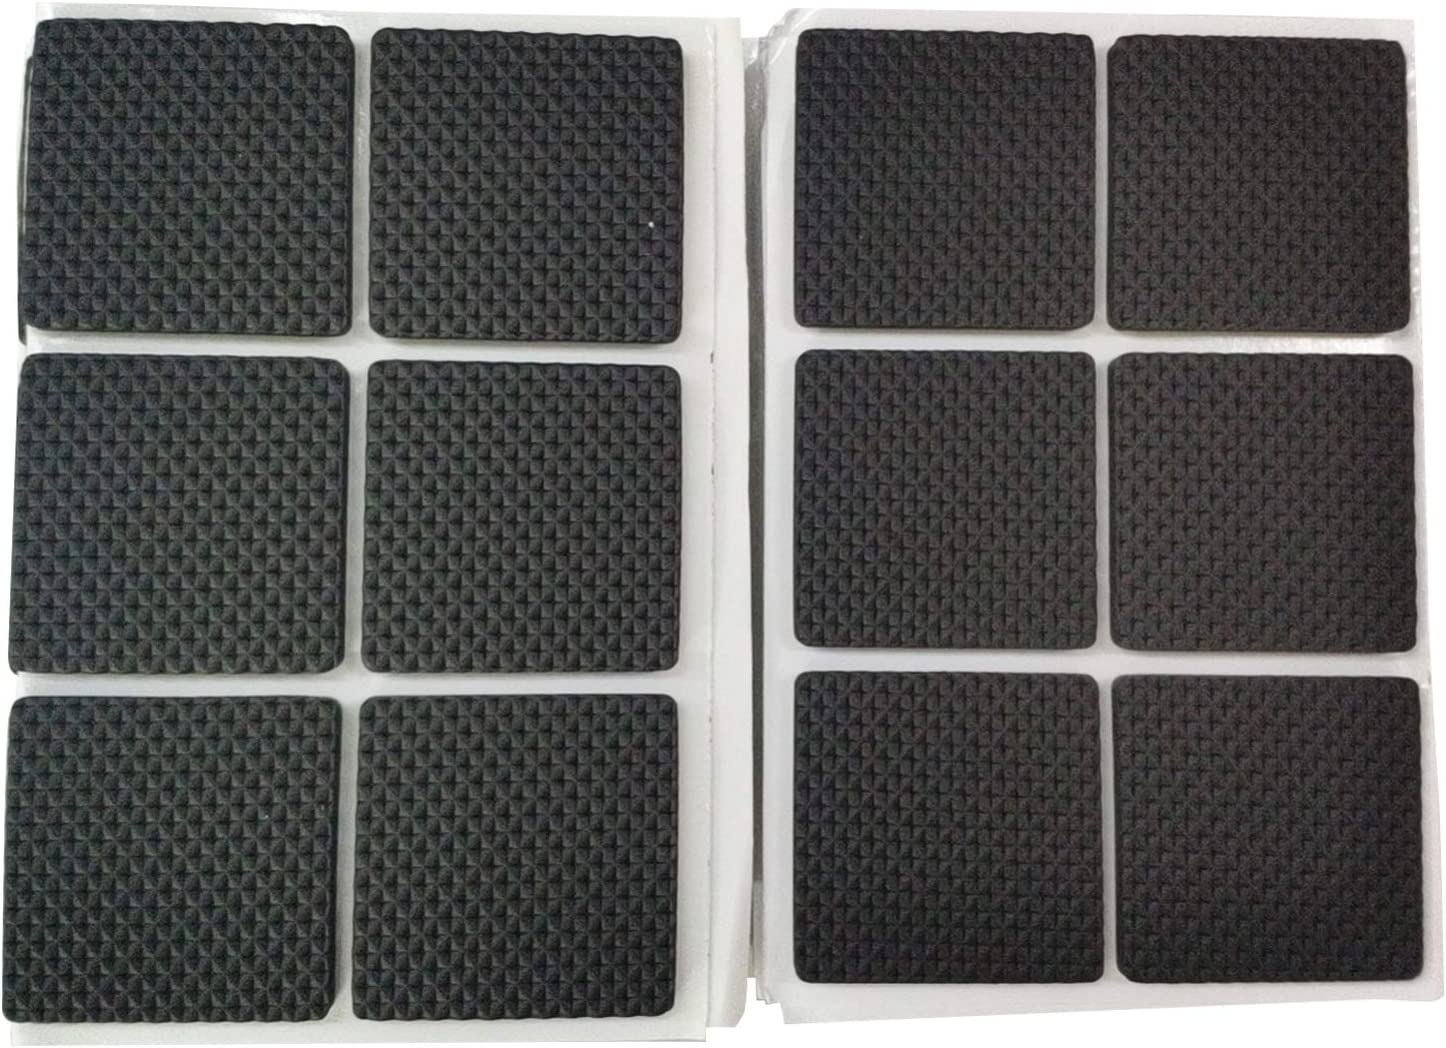 Antrader 48pcs Non-Slip Furniture Pads Multifunction Self Adhesive Sticky Floor Protector Mat Table Chair Sofa Feet Black Square 1.5